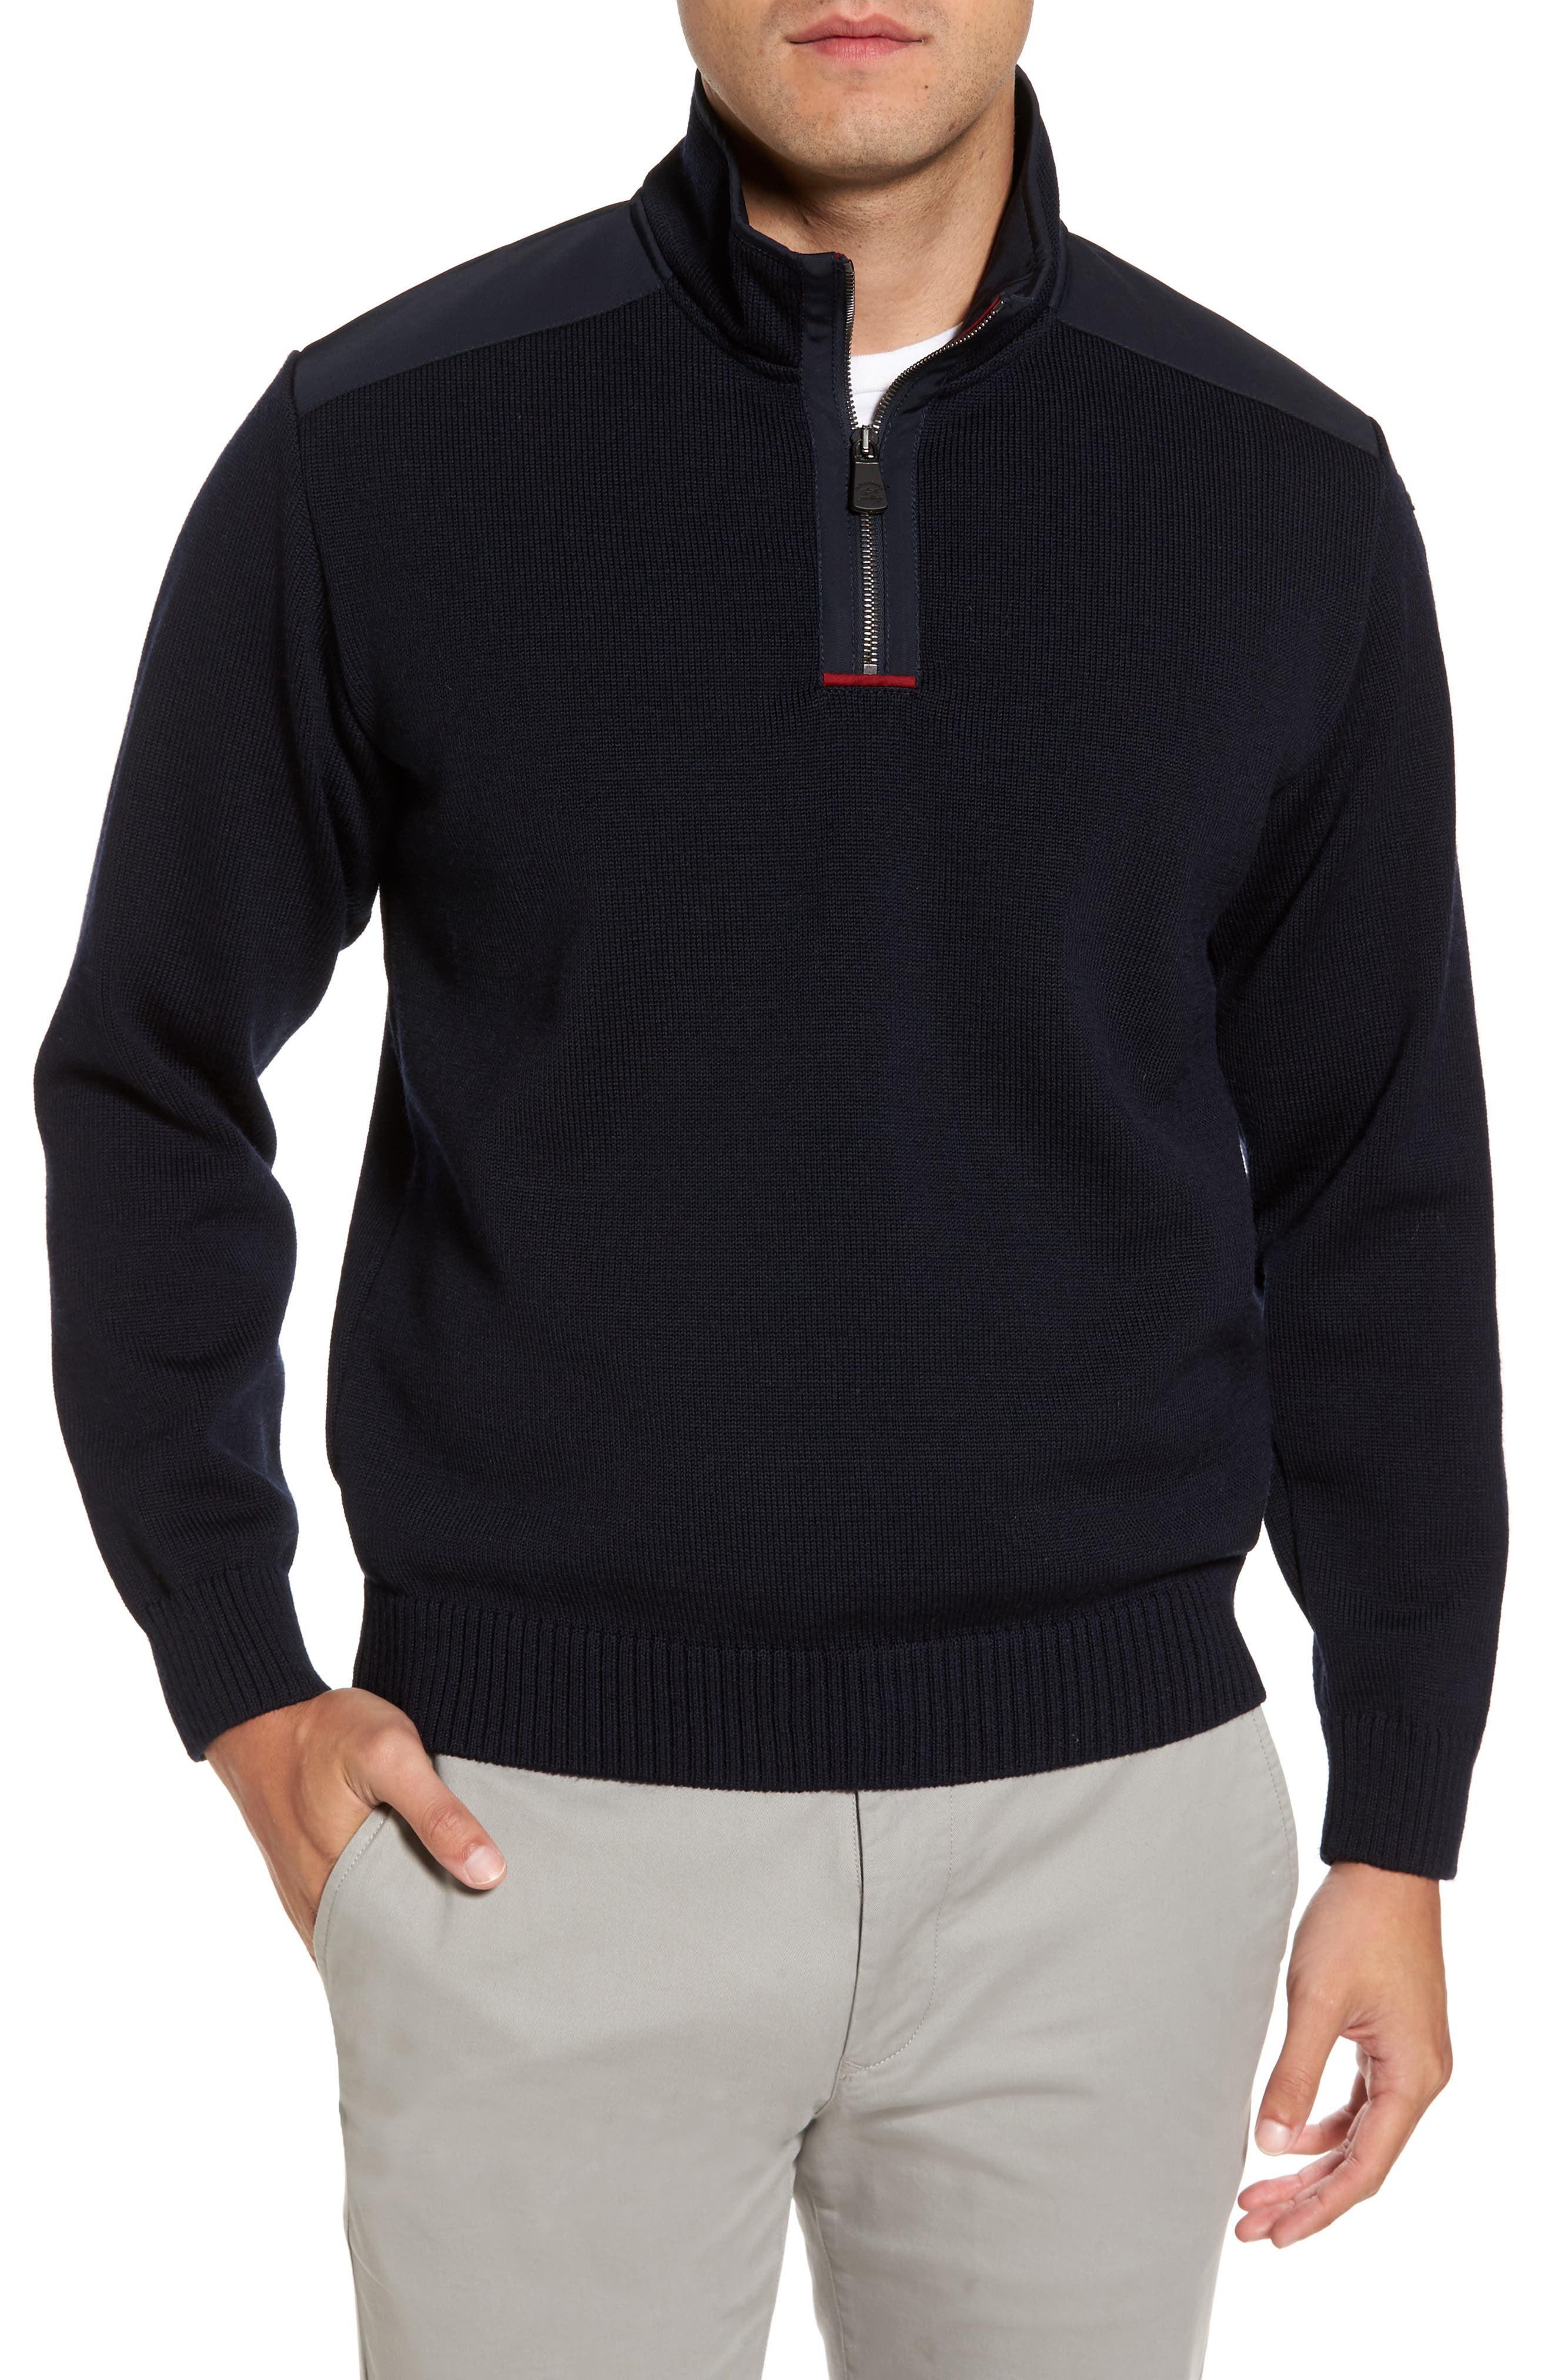 Paul&Shark Bretagne Quarter Zip Wool Sweater,                             Main thumbnail 1, color,                             Navy